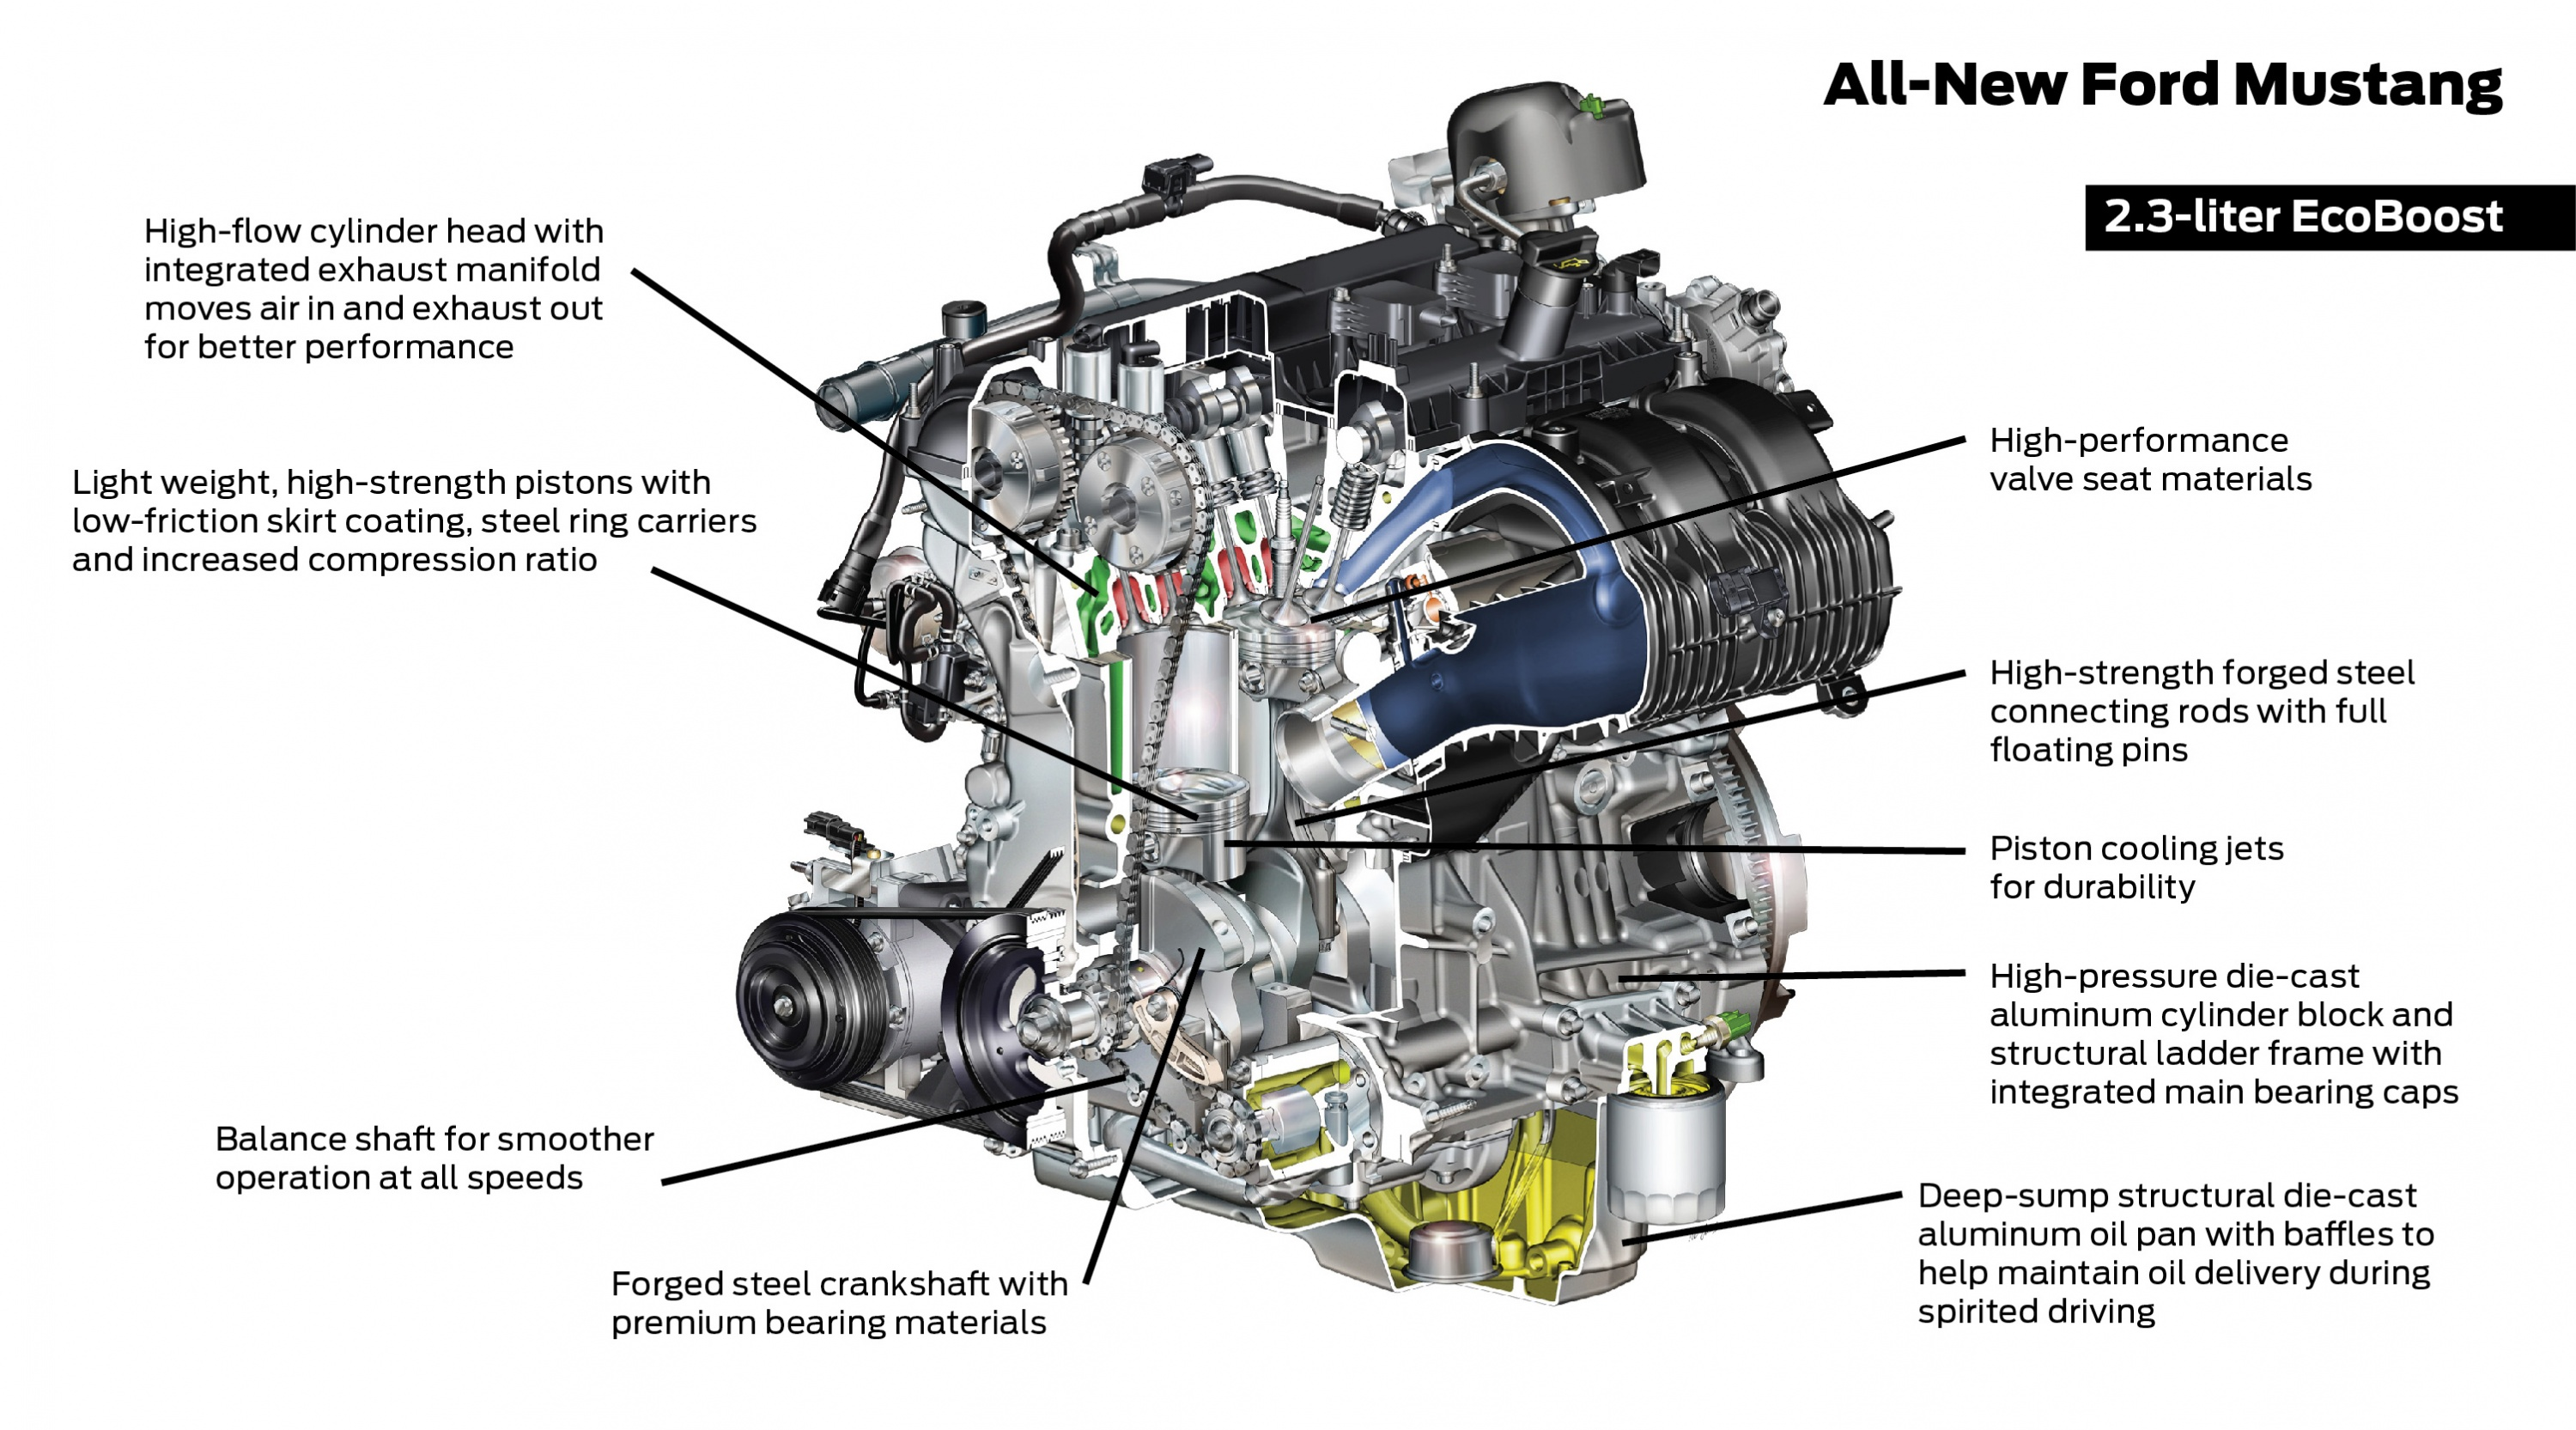 a-simple-guide-to-the-2015-ford-mustang-23-liter-ecoboost-engine-92520_1.jpg